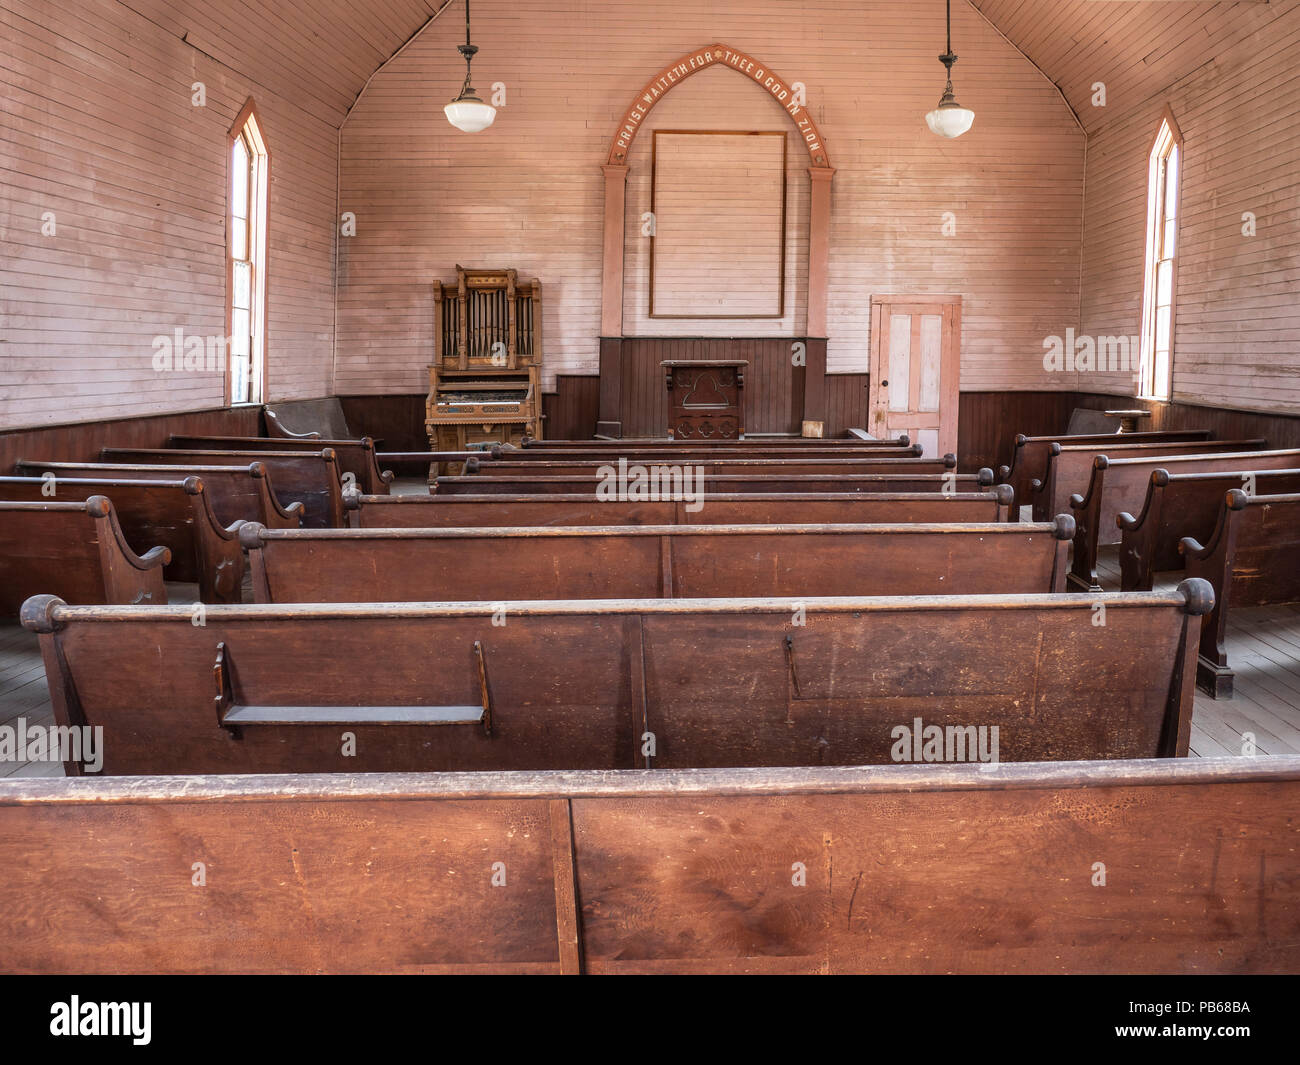 Inside the Methodist Church, Bodie ghost town, Bodie State Historic Park, California. Stock Photo